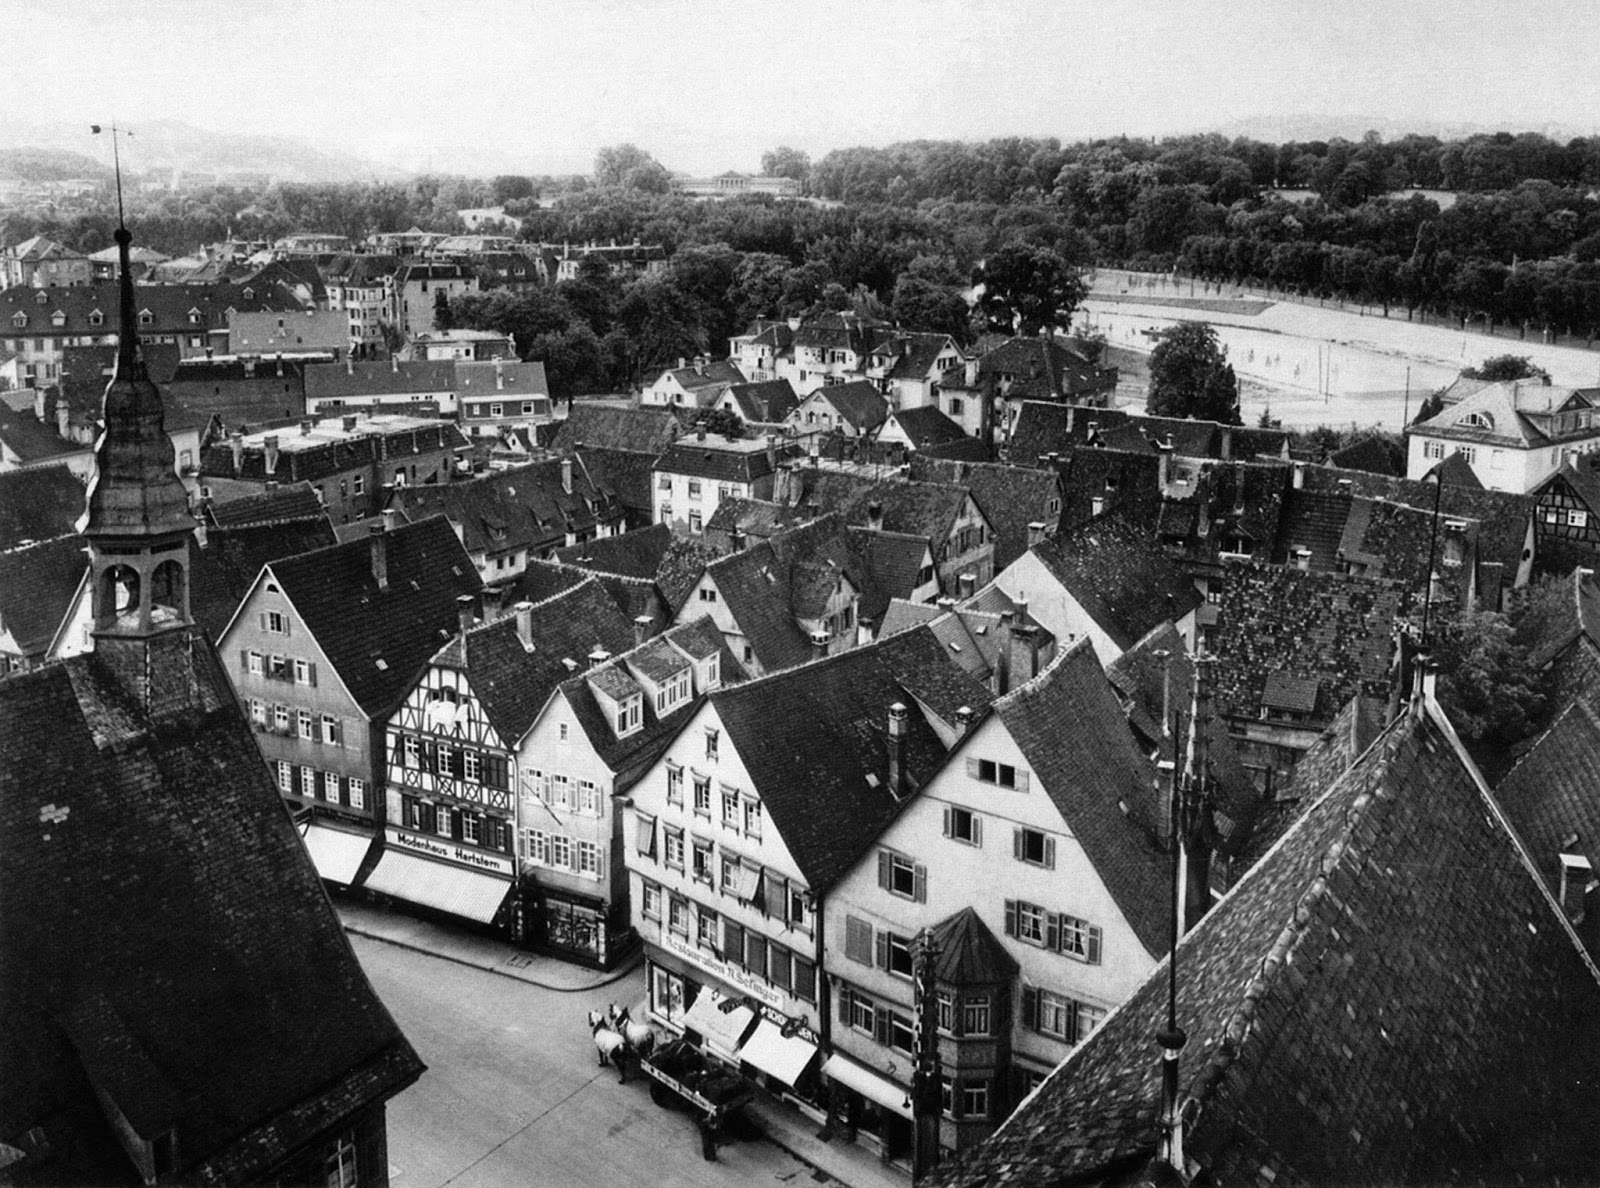 Bad cannstatt info historisches bad cannstatt for Divan 2 bad cannstatt